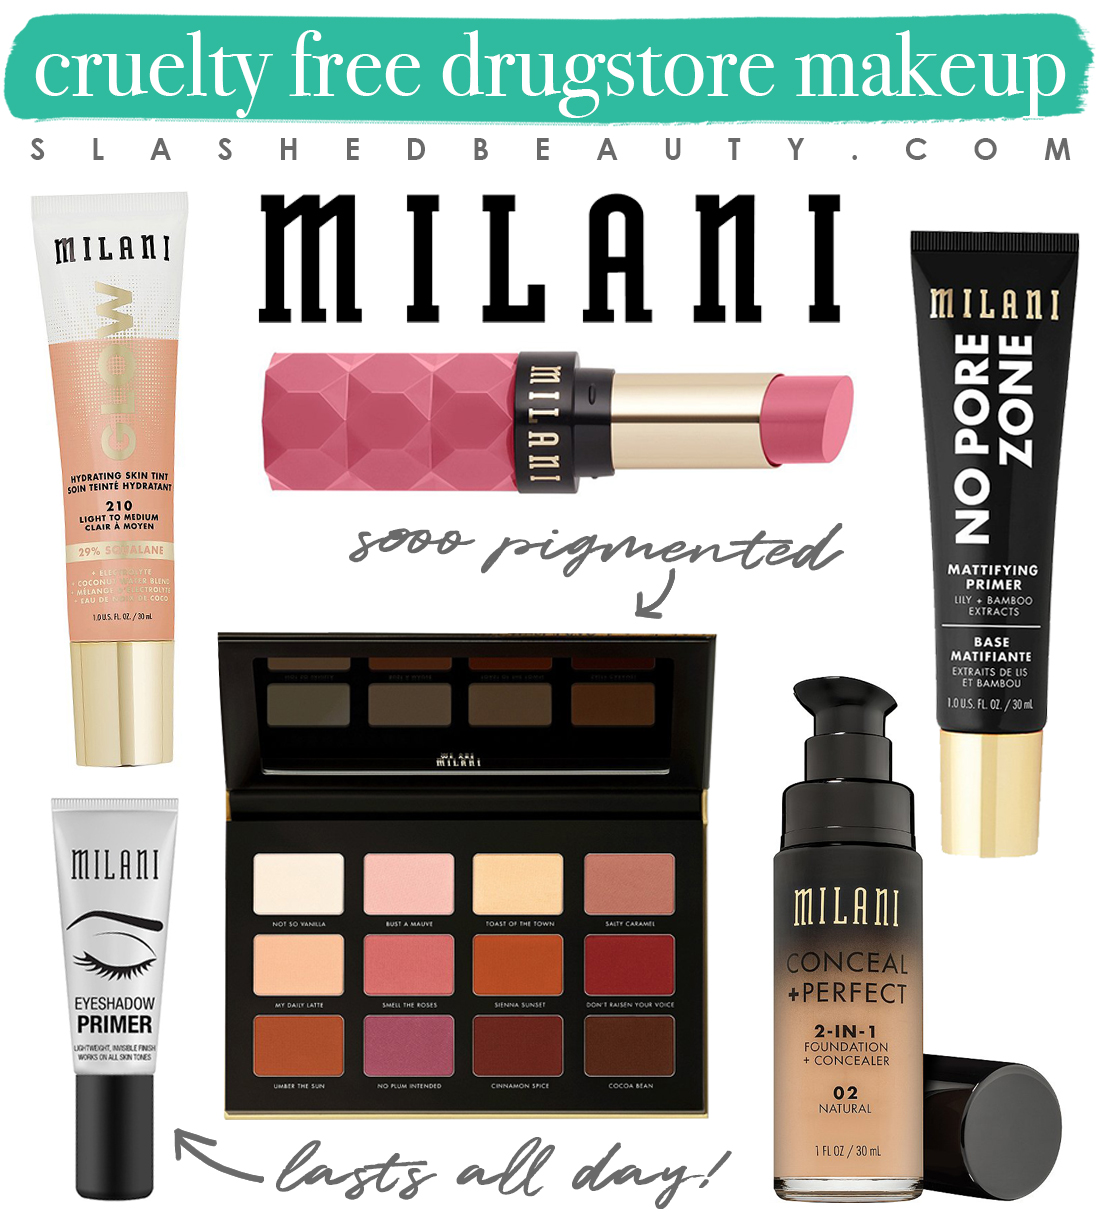 My 5 Favorite Cruelty Free Drugstore Makeup Brands   Milani Makeup Collage   Slashed Beauty